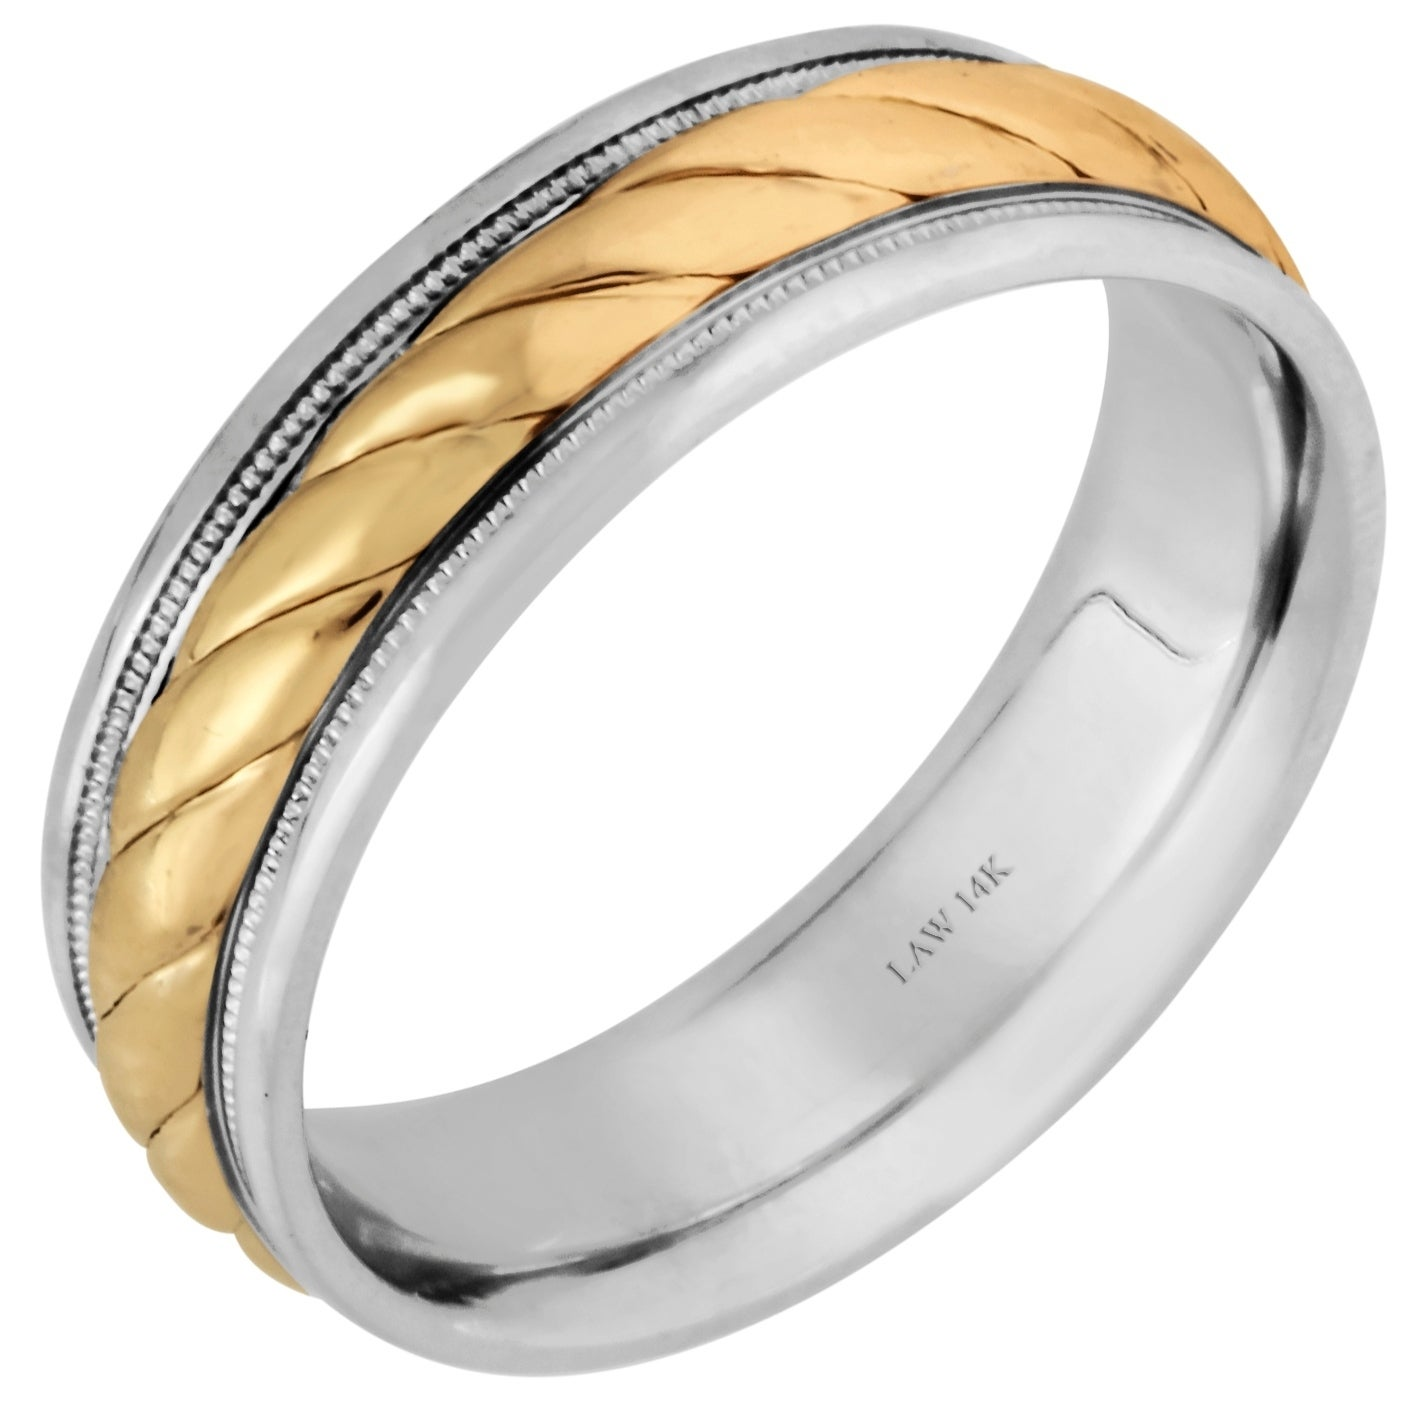 14k two-tone gold rope design comfort fit women's wedding bands